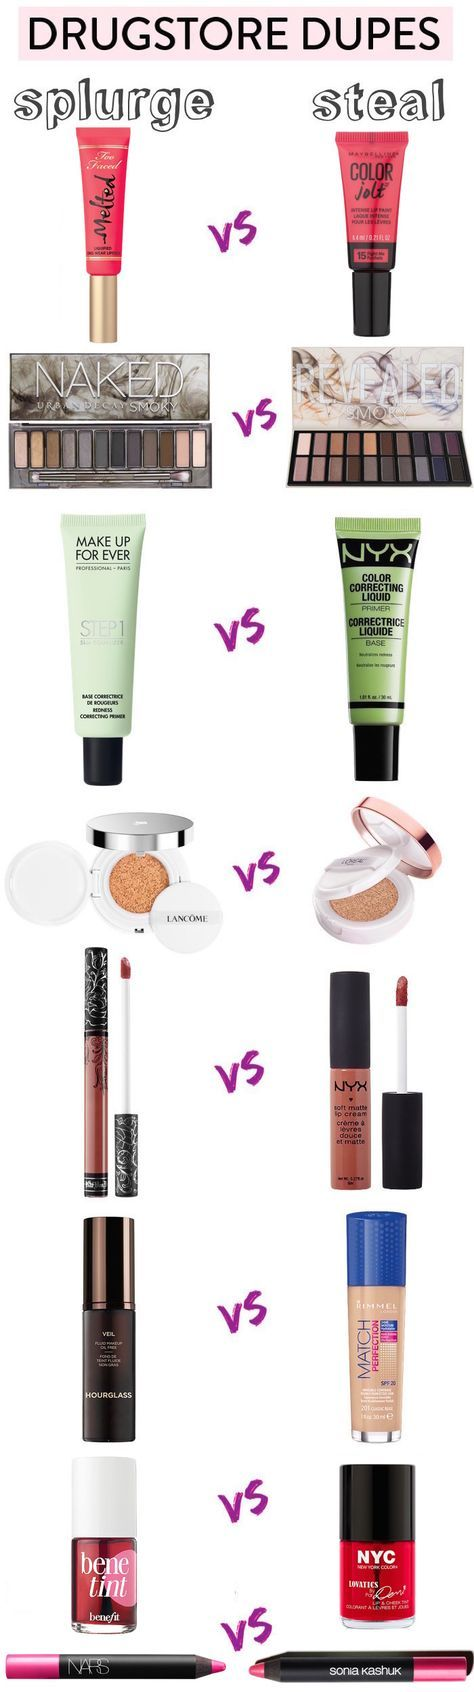 The ultimate list of best drugstore dupes, most under $10! Get the high-end look without breaking the bank with these cheap drugstore makeup dupes!